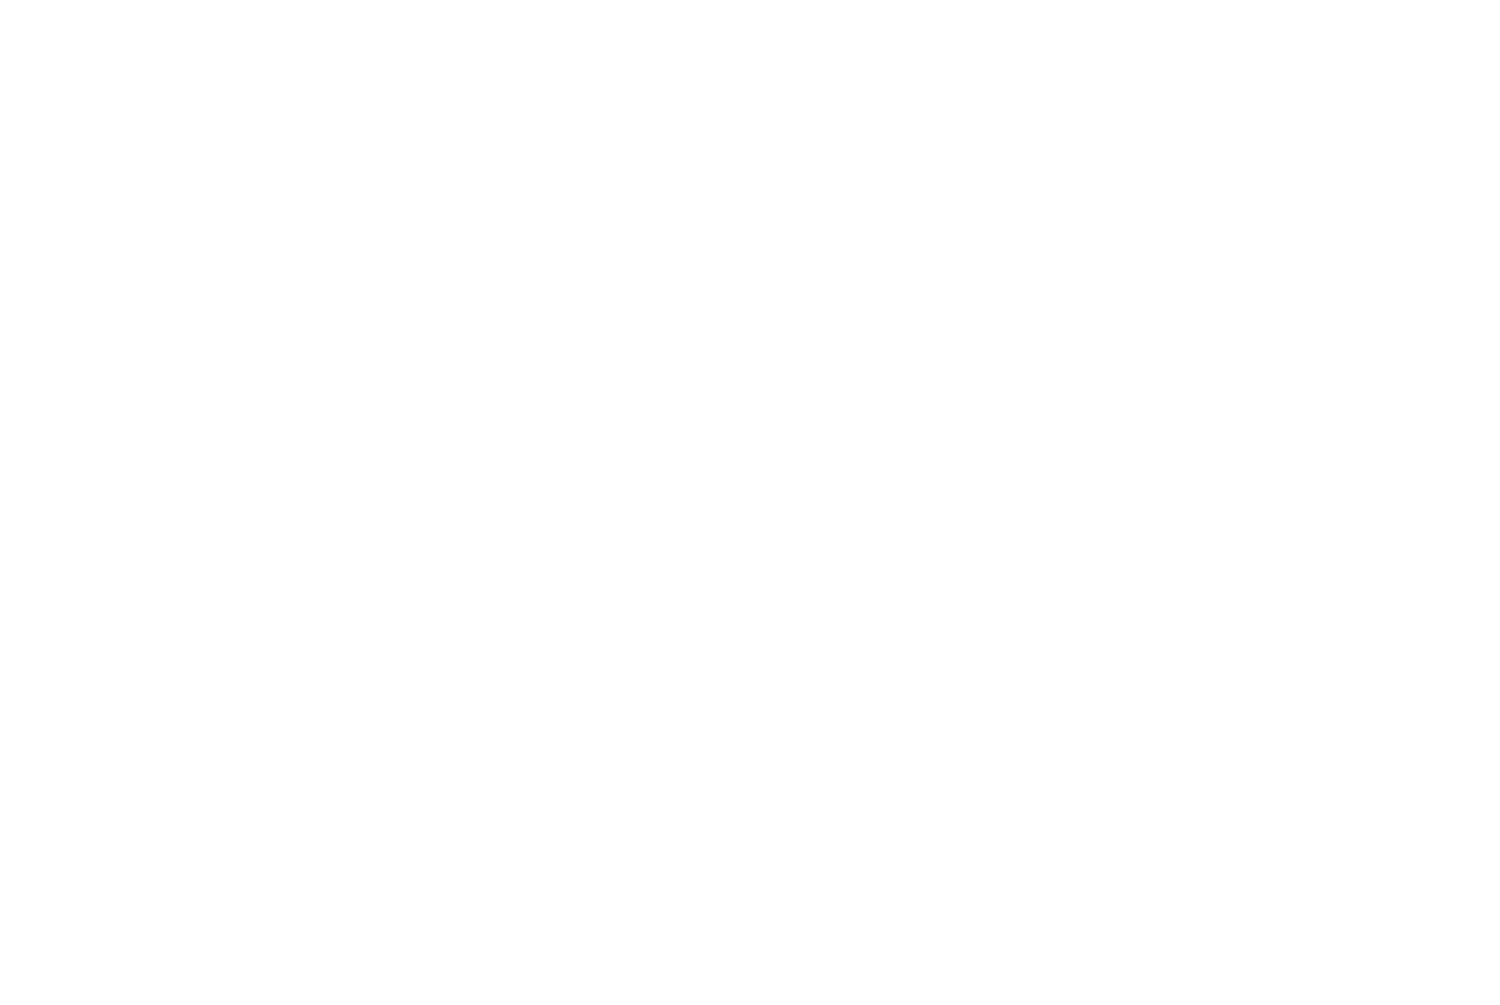 Dress Like A Gent ™